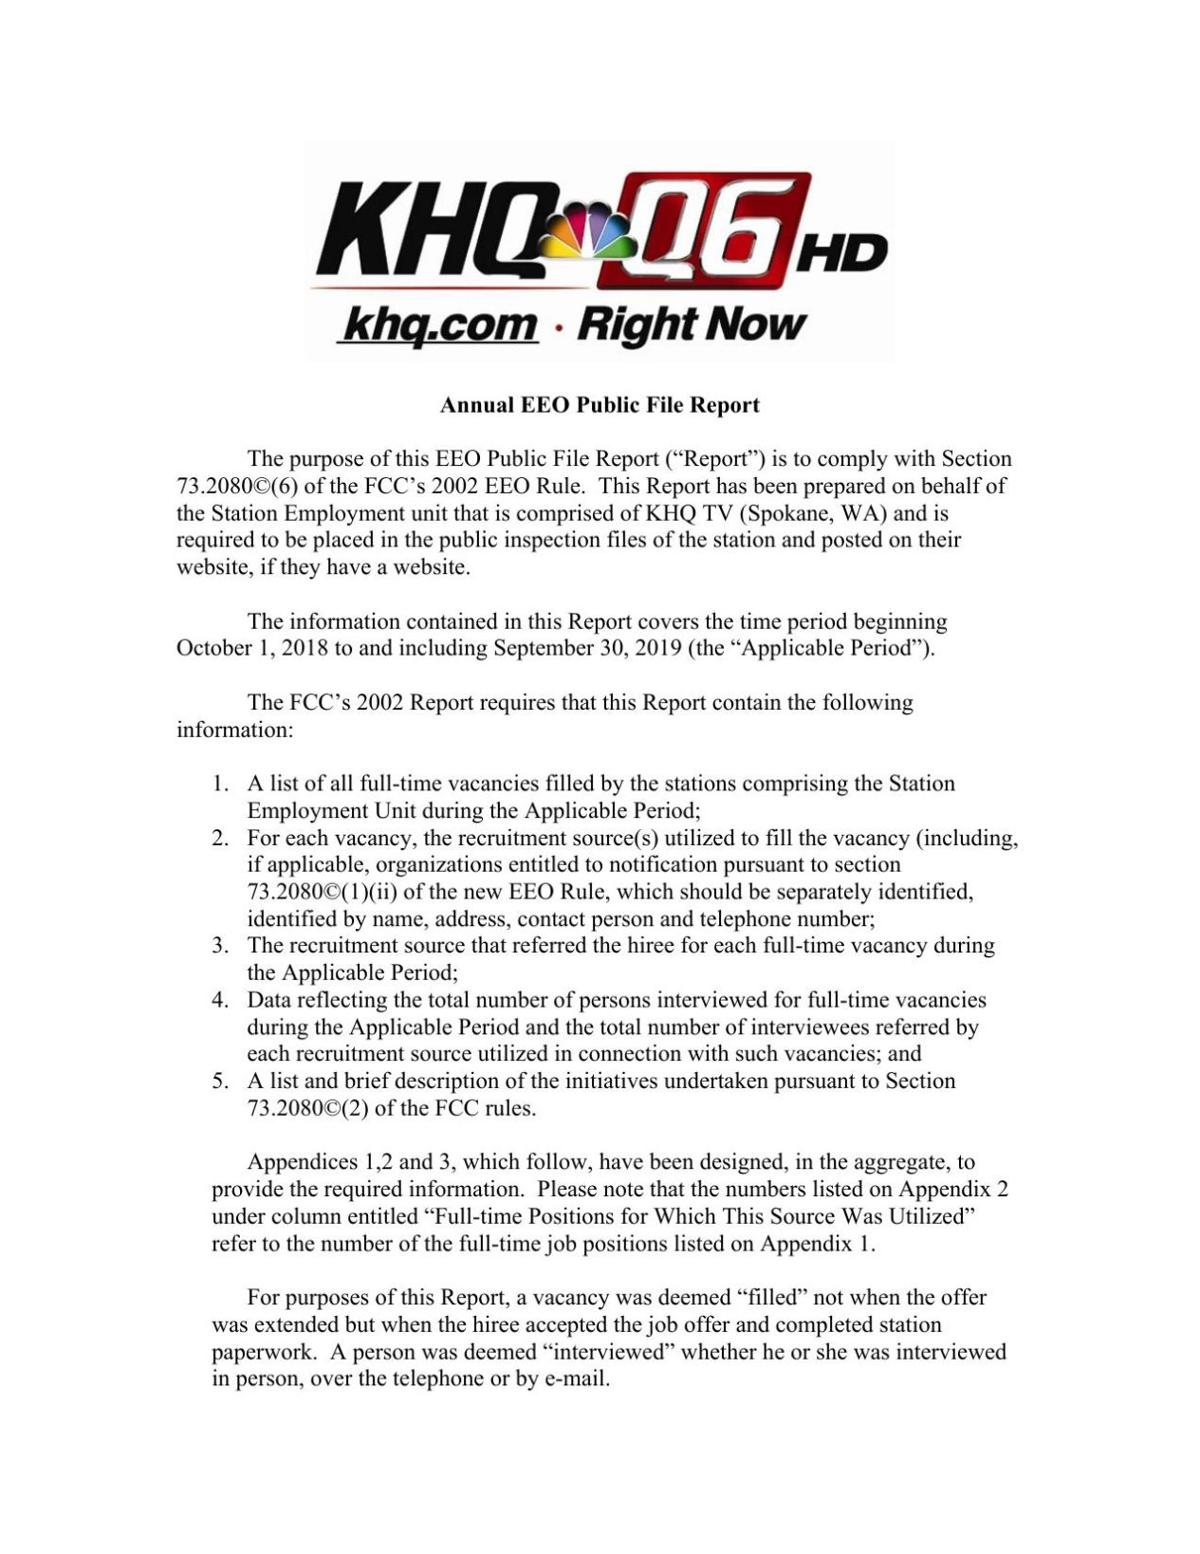 KHQ Annual EEO Public File Report 2019